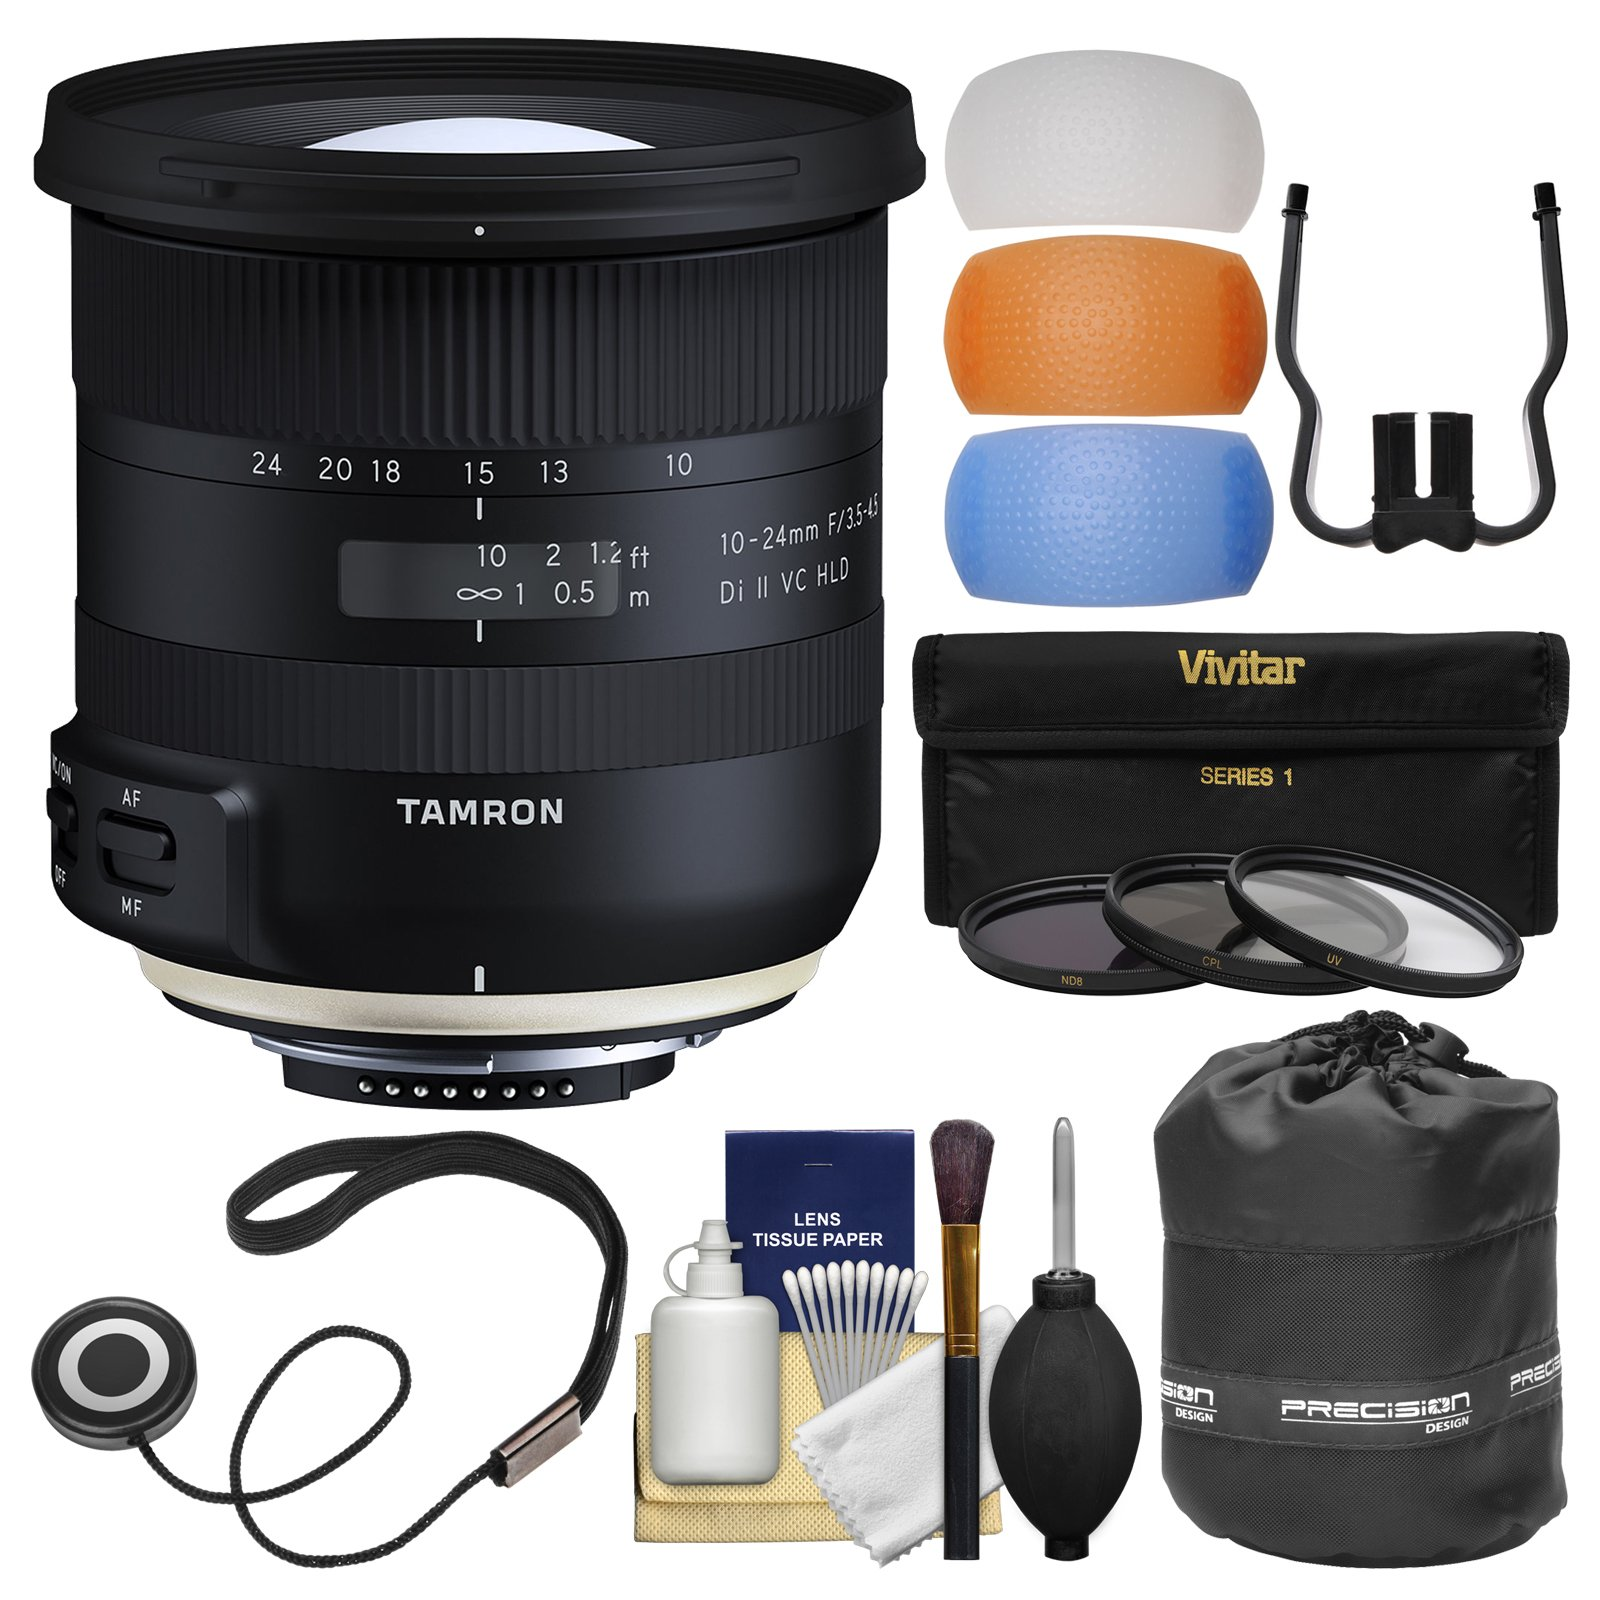 Tamron 10-24mm f/3.5-4.5 Di II VC HLD Zoom Lens with 3 UV/CPL/ND8 Filters + Pouch + Flash Diffusers + Kit for Nikon Digital SLR Cameras